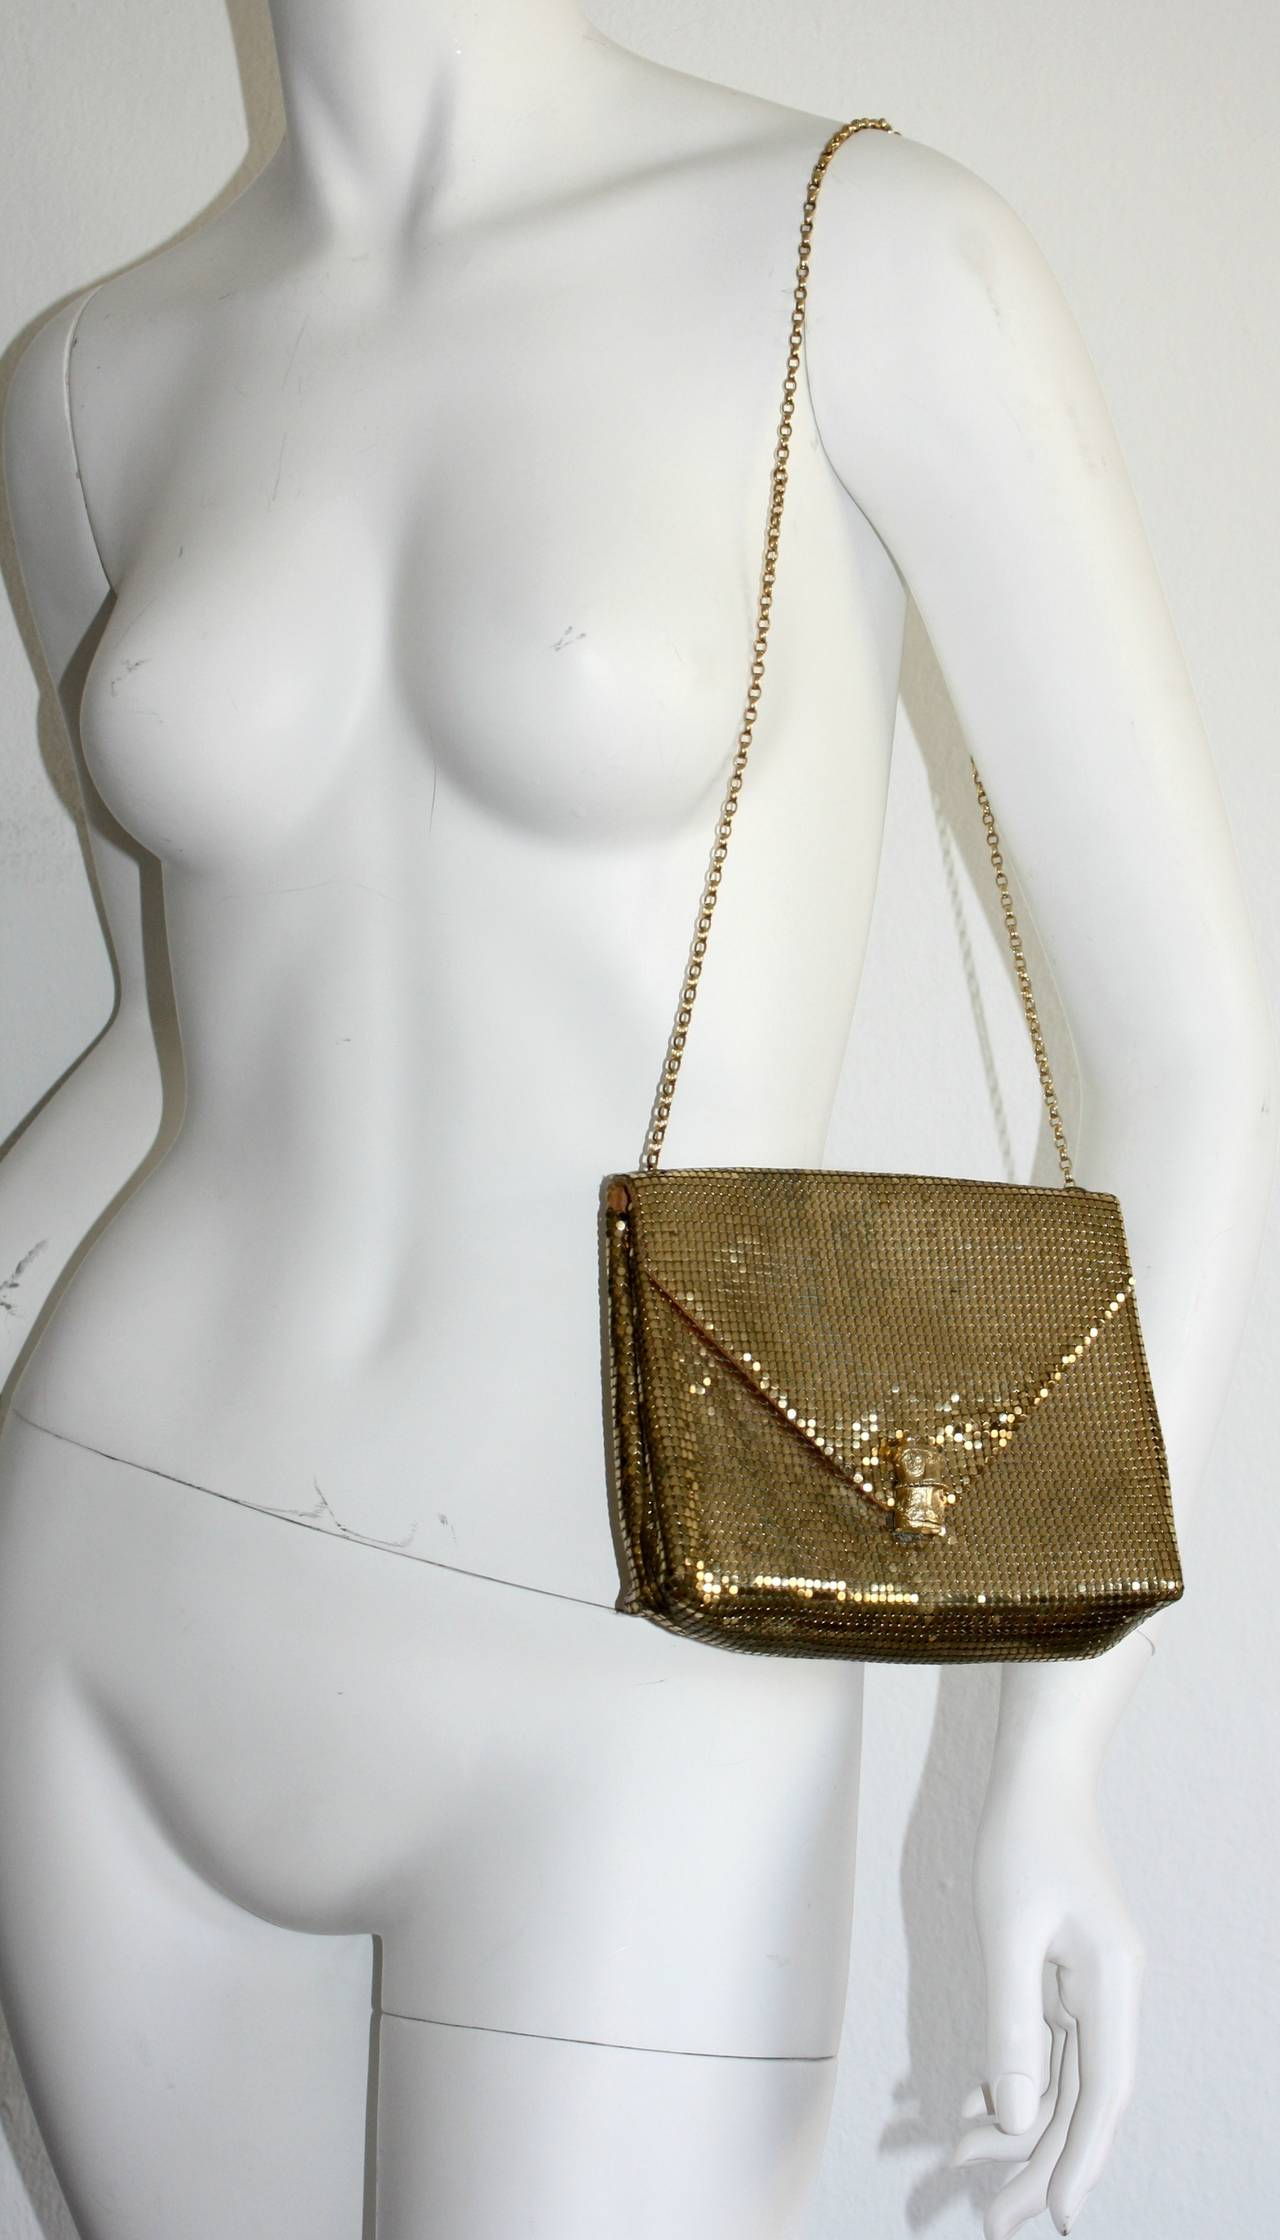 1960s Vintage Whiting and Davis Gold Metal Mesh Handbag or Clutch 2